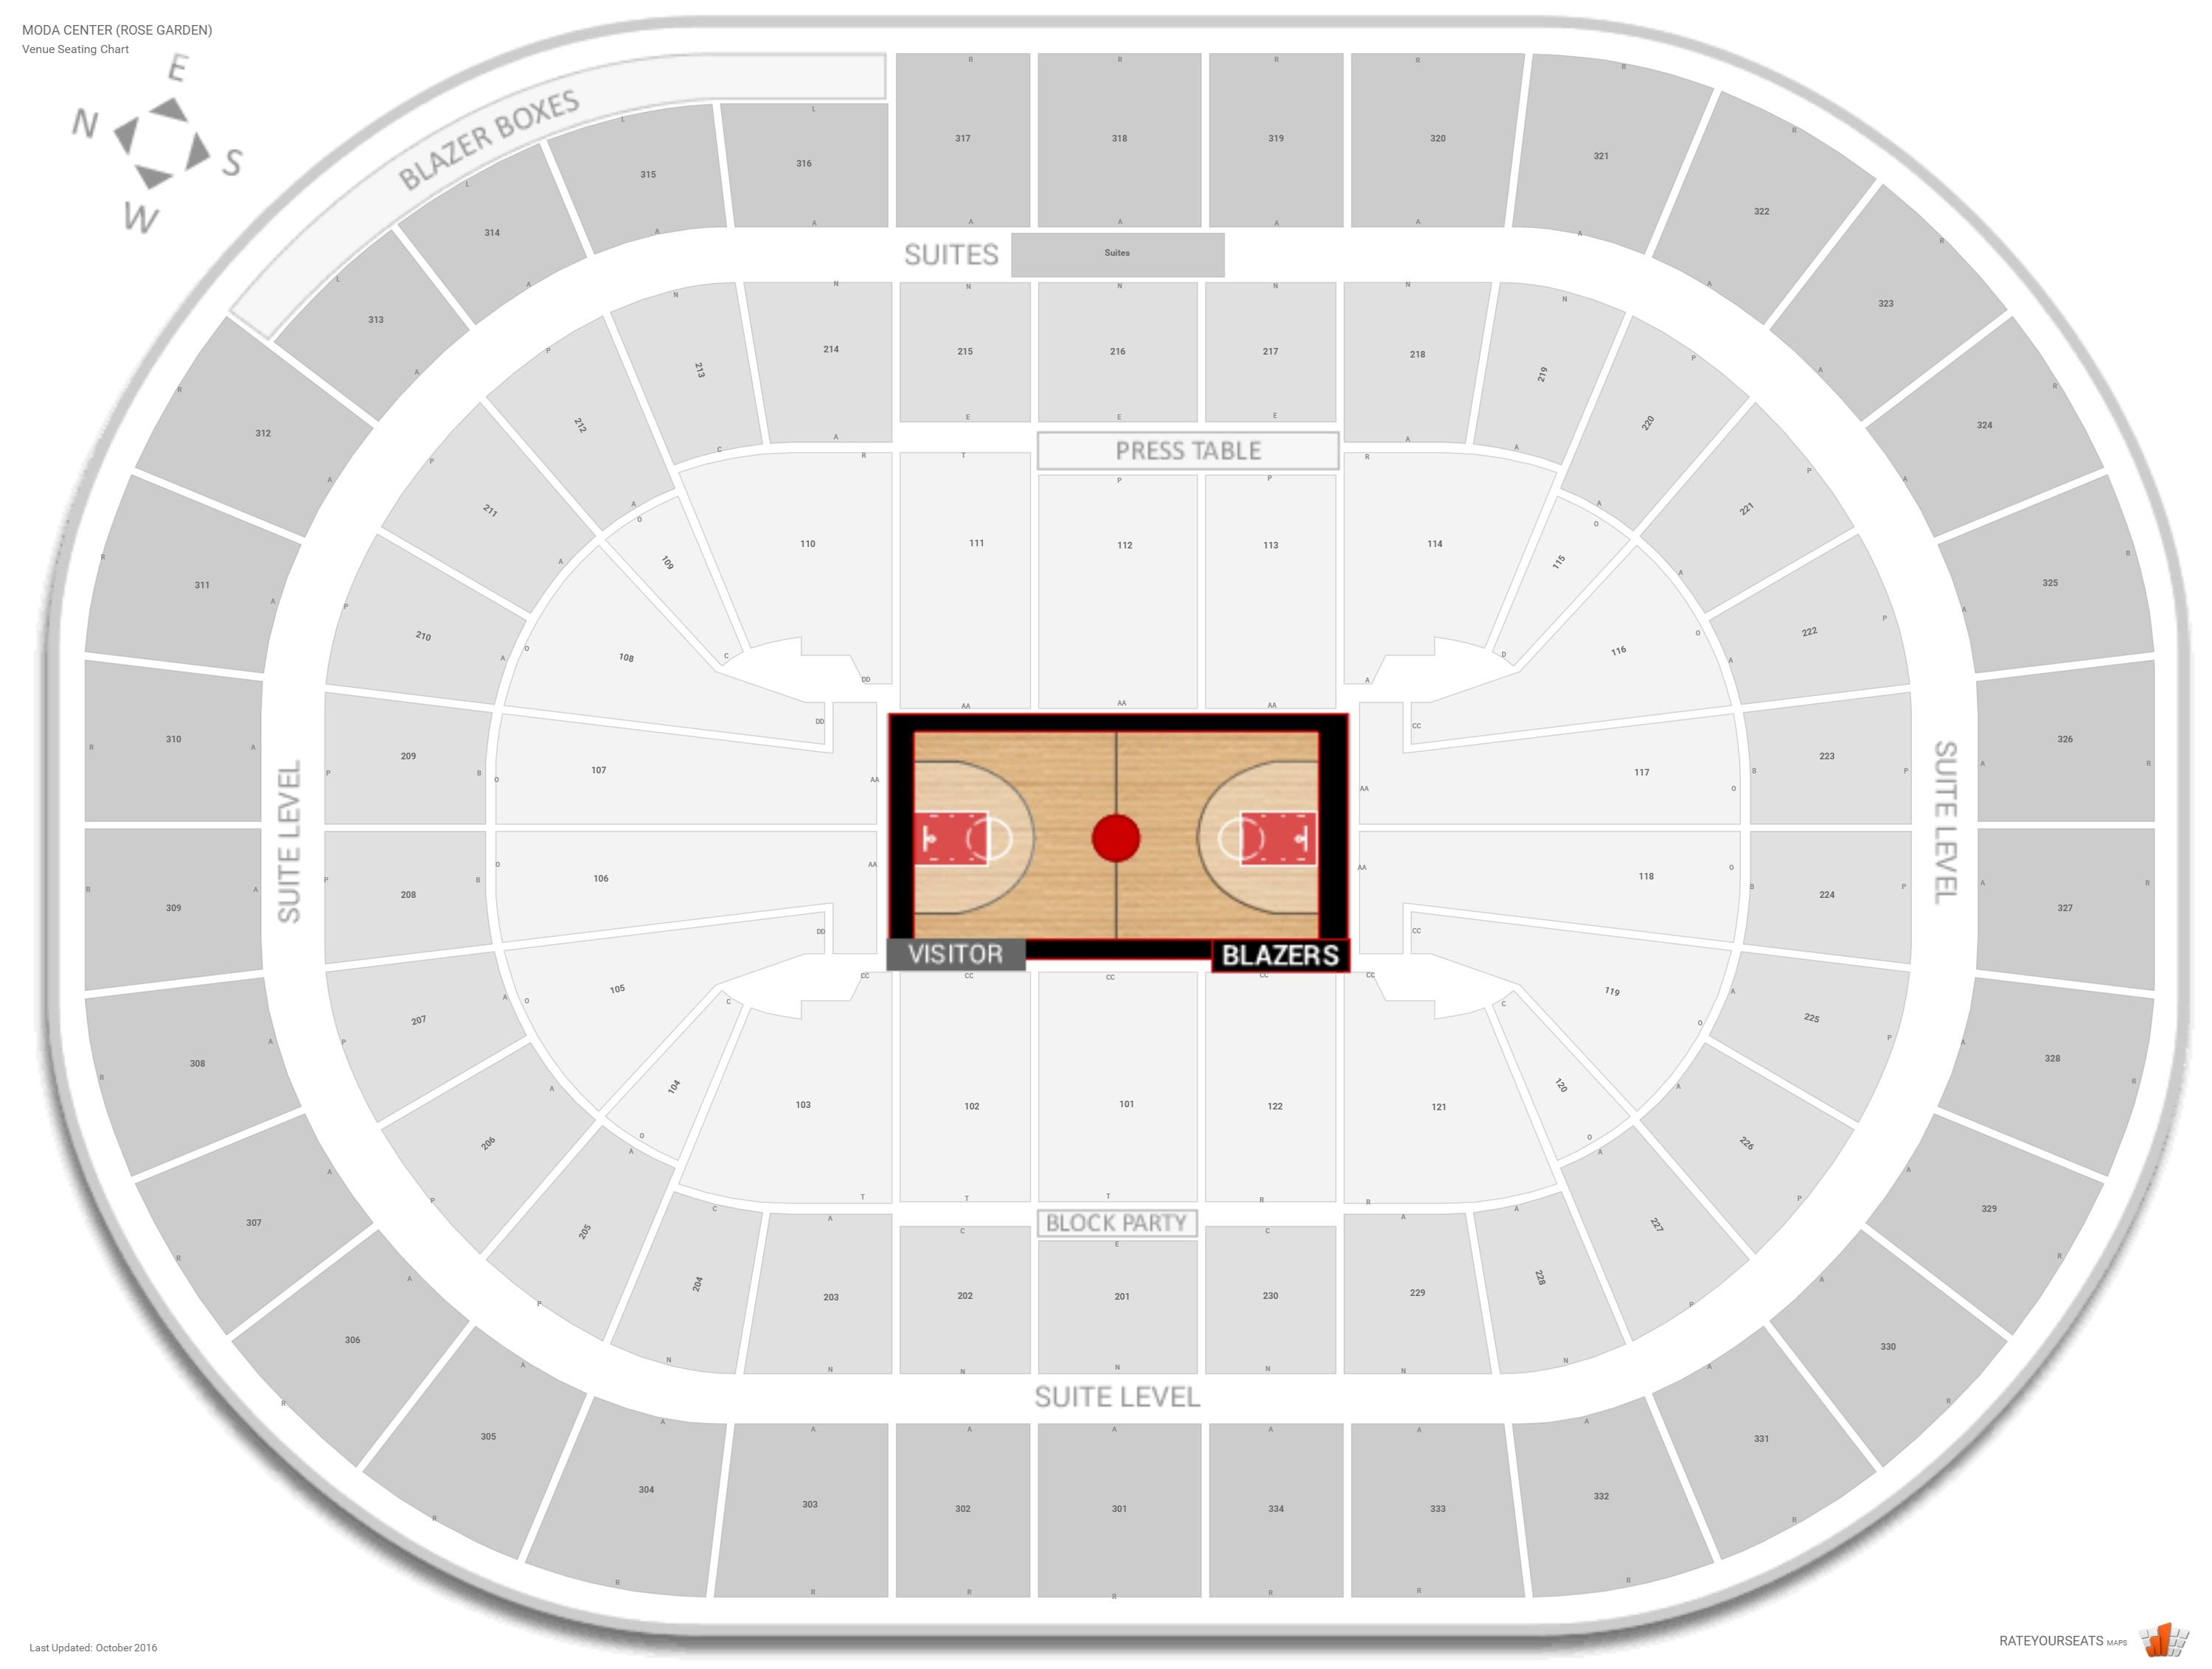 Moda center seating chart timiz conceptzmusic co